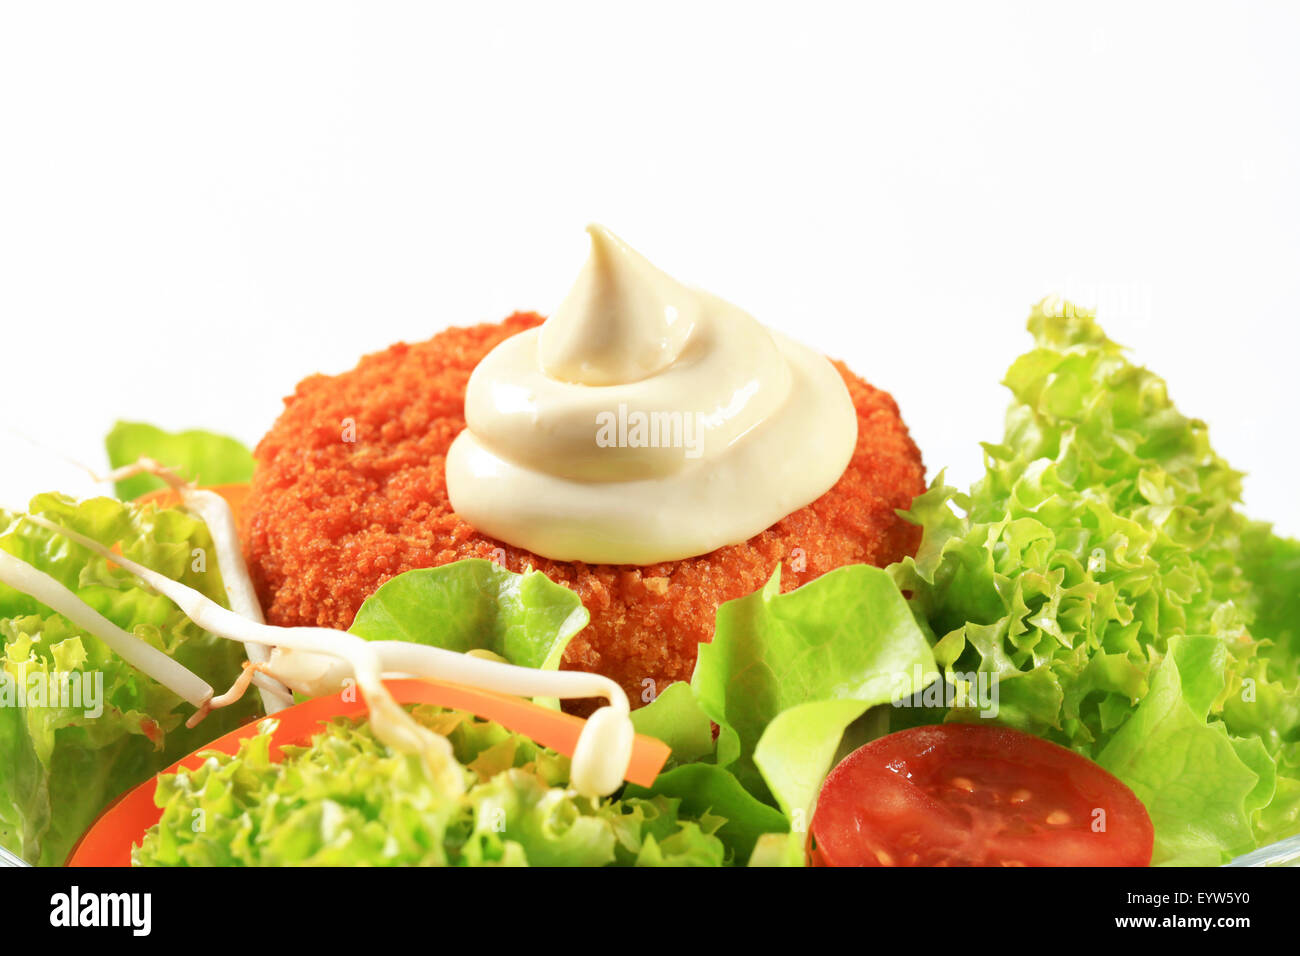 Green salad with fried breaded cheese and mayonnaise - Stock Image